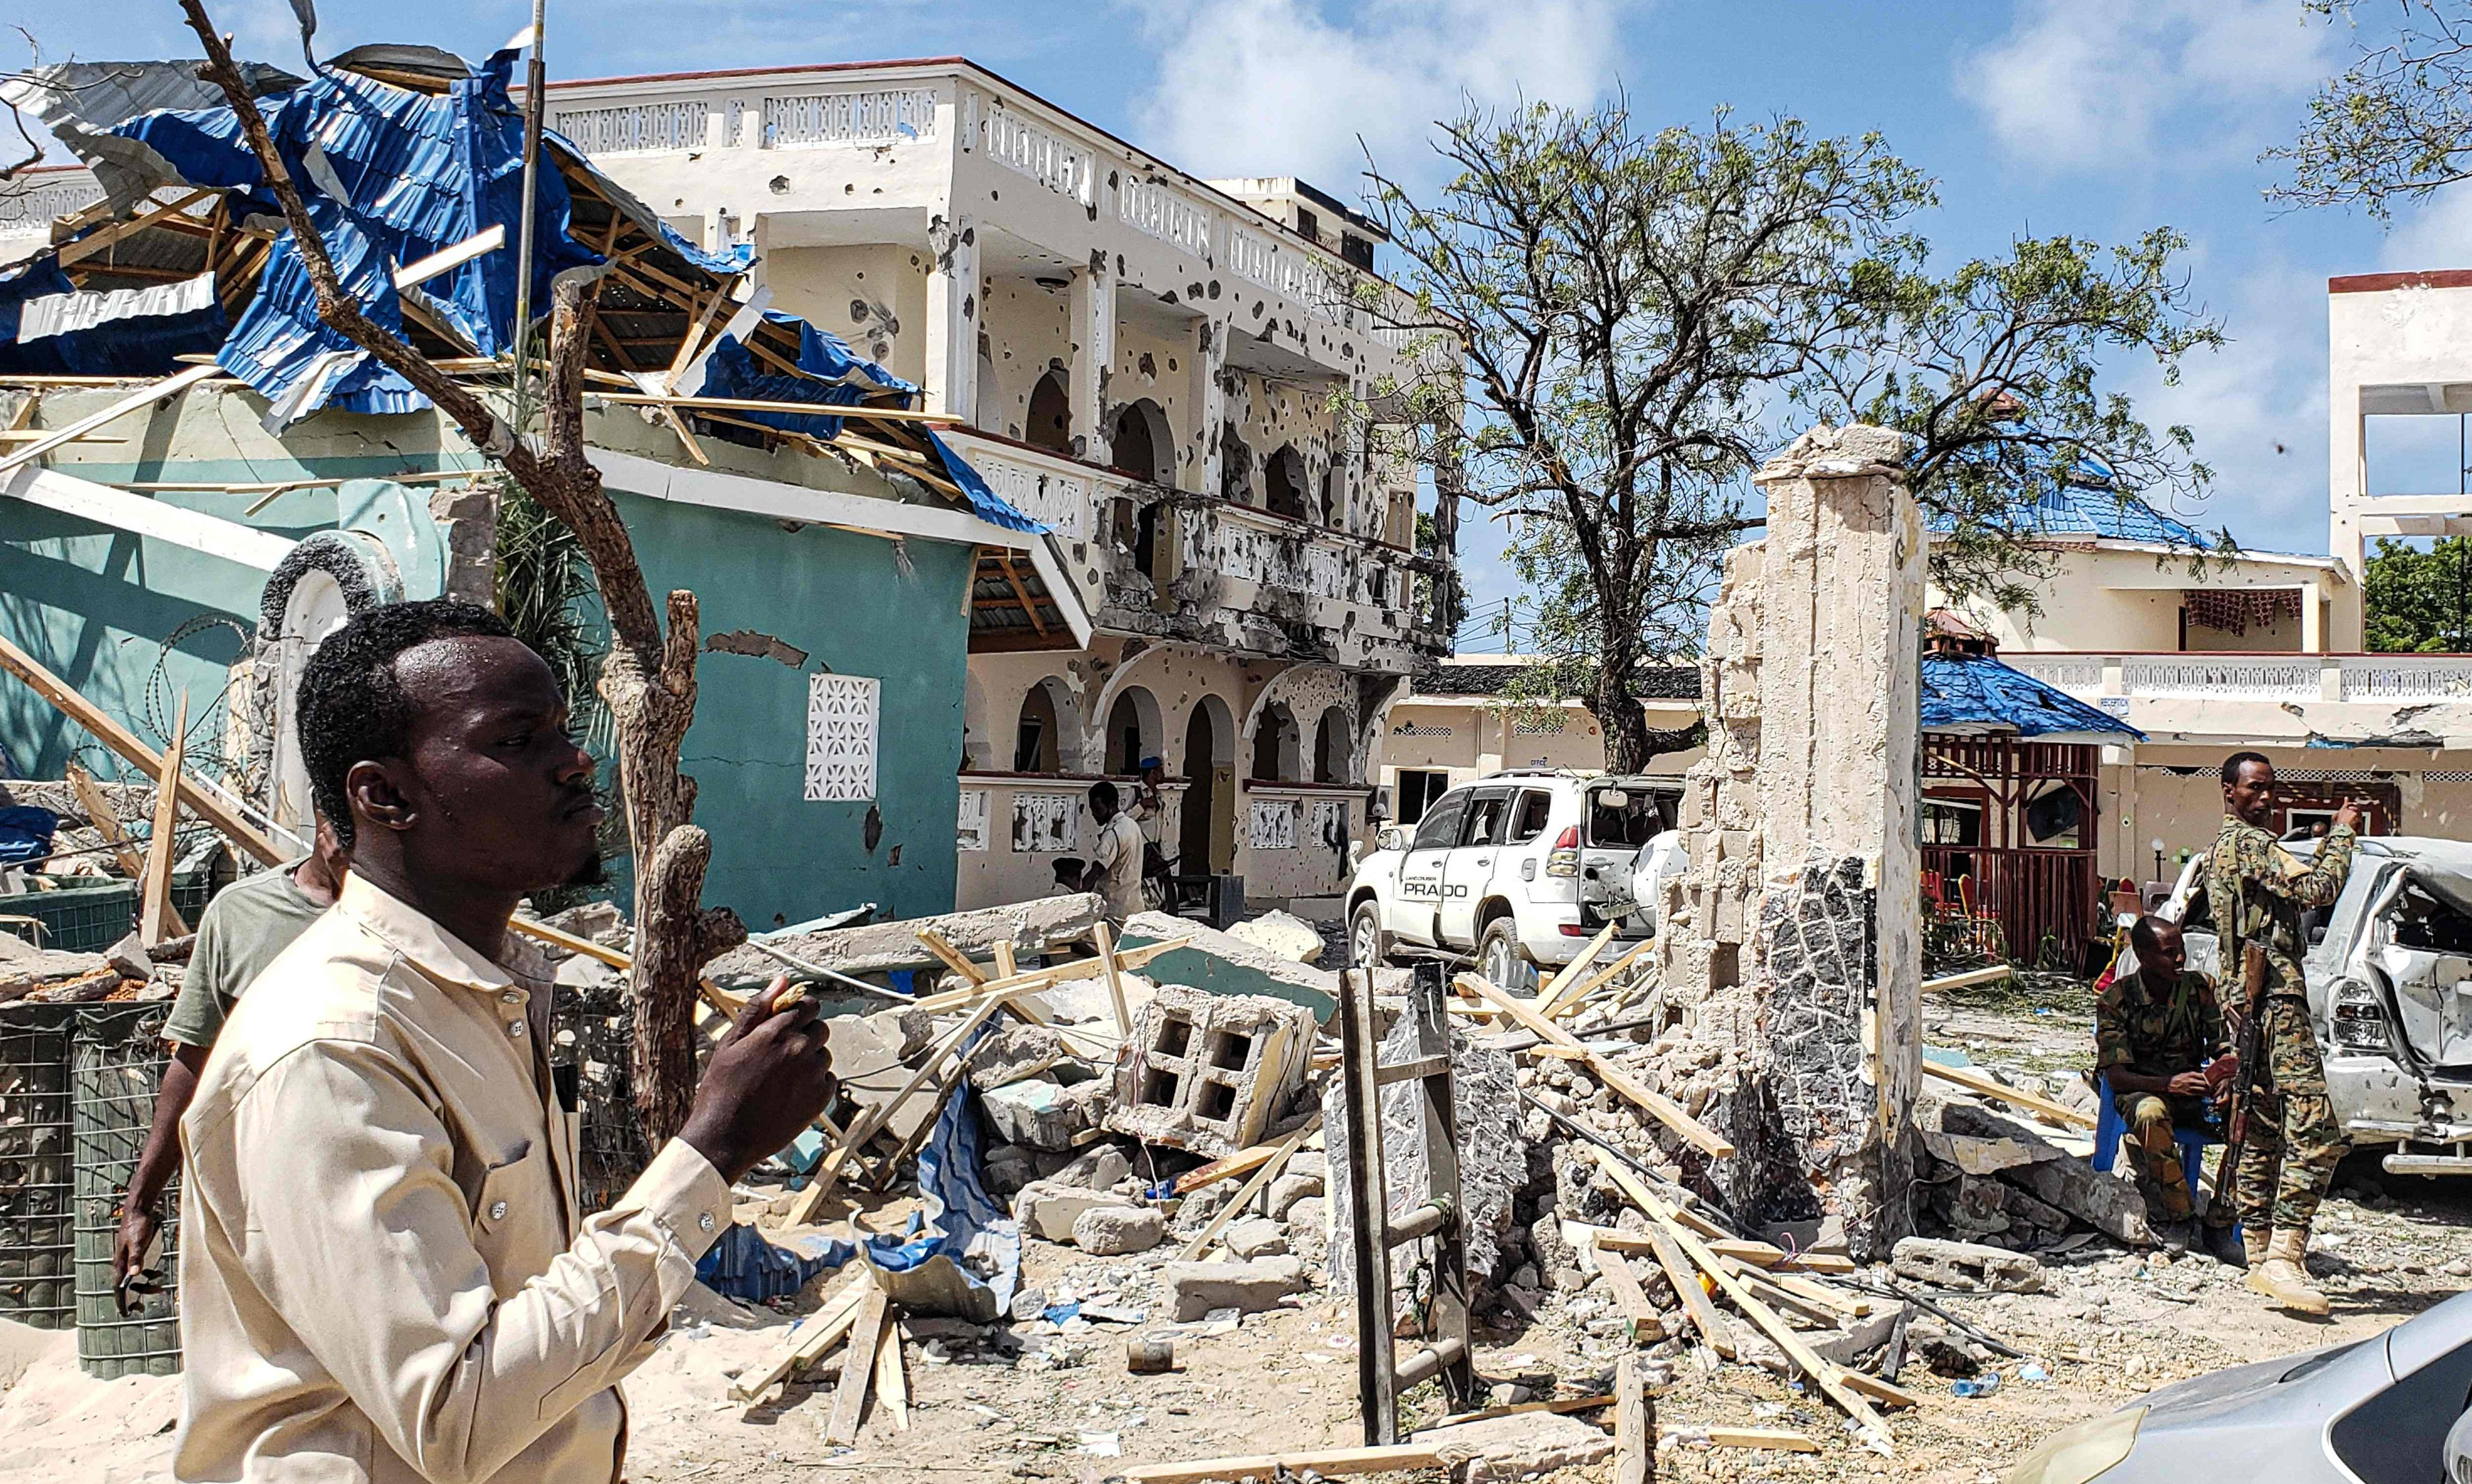 'Send her back' isn't just racist. It ignores the US's critical role in Somalia